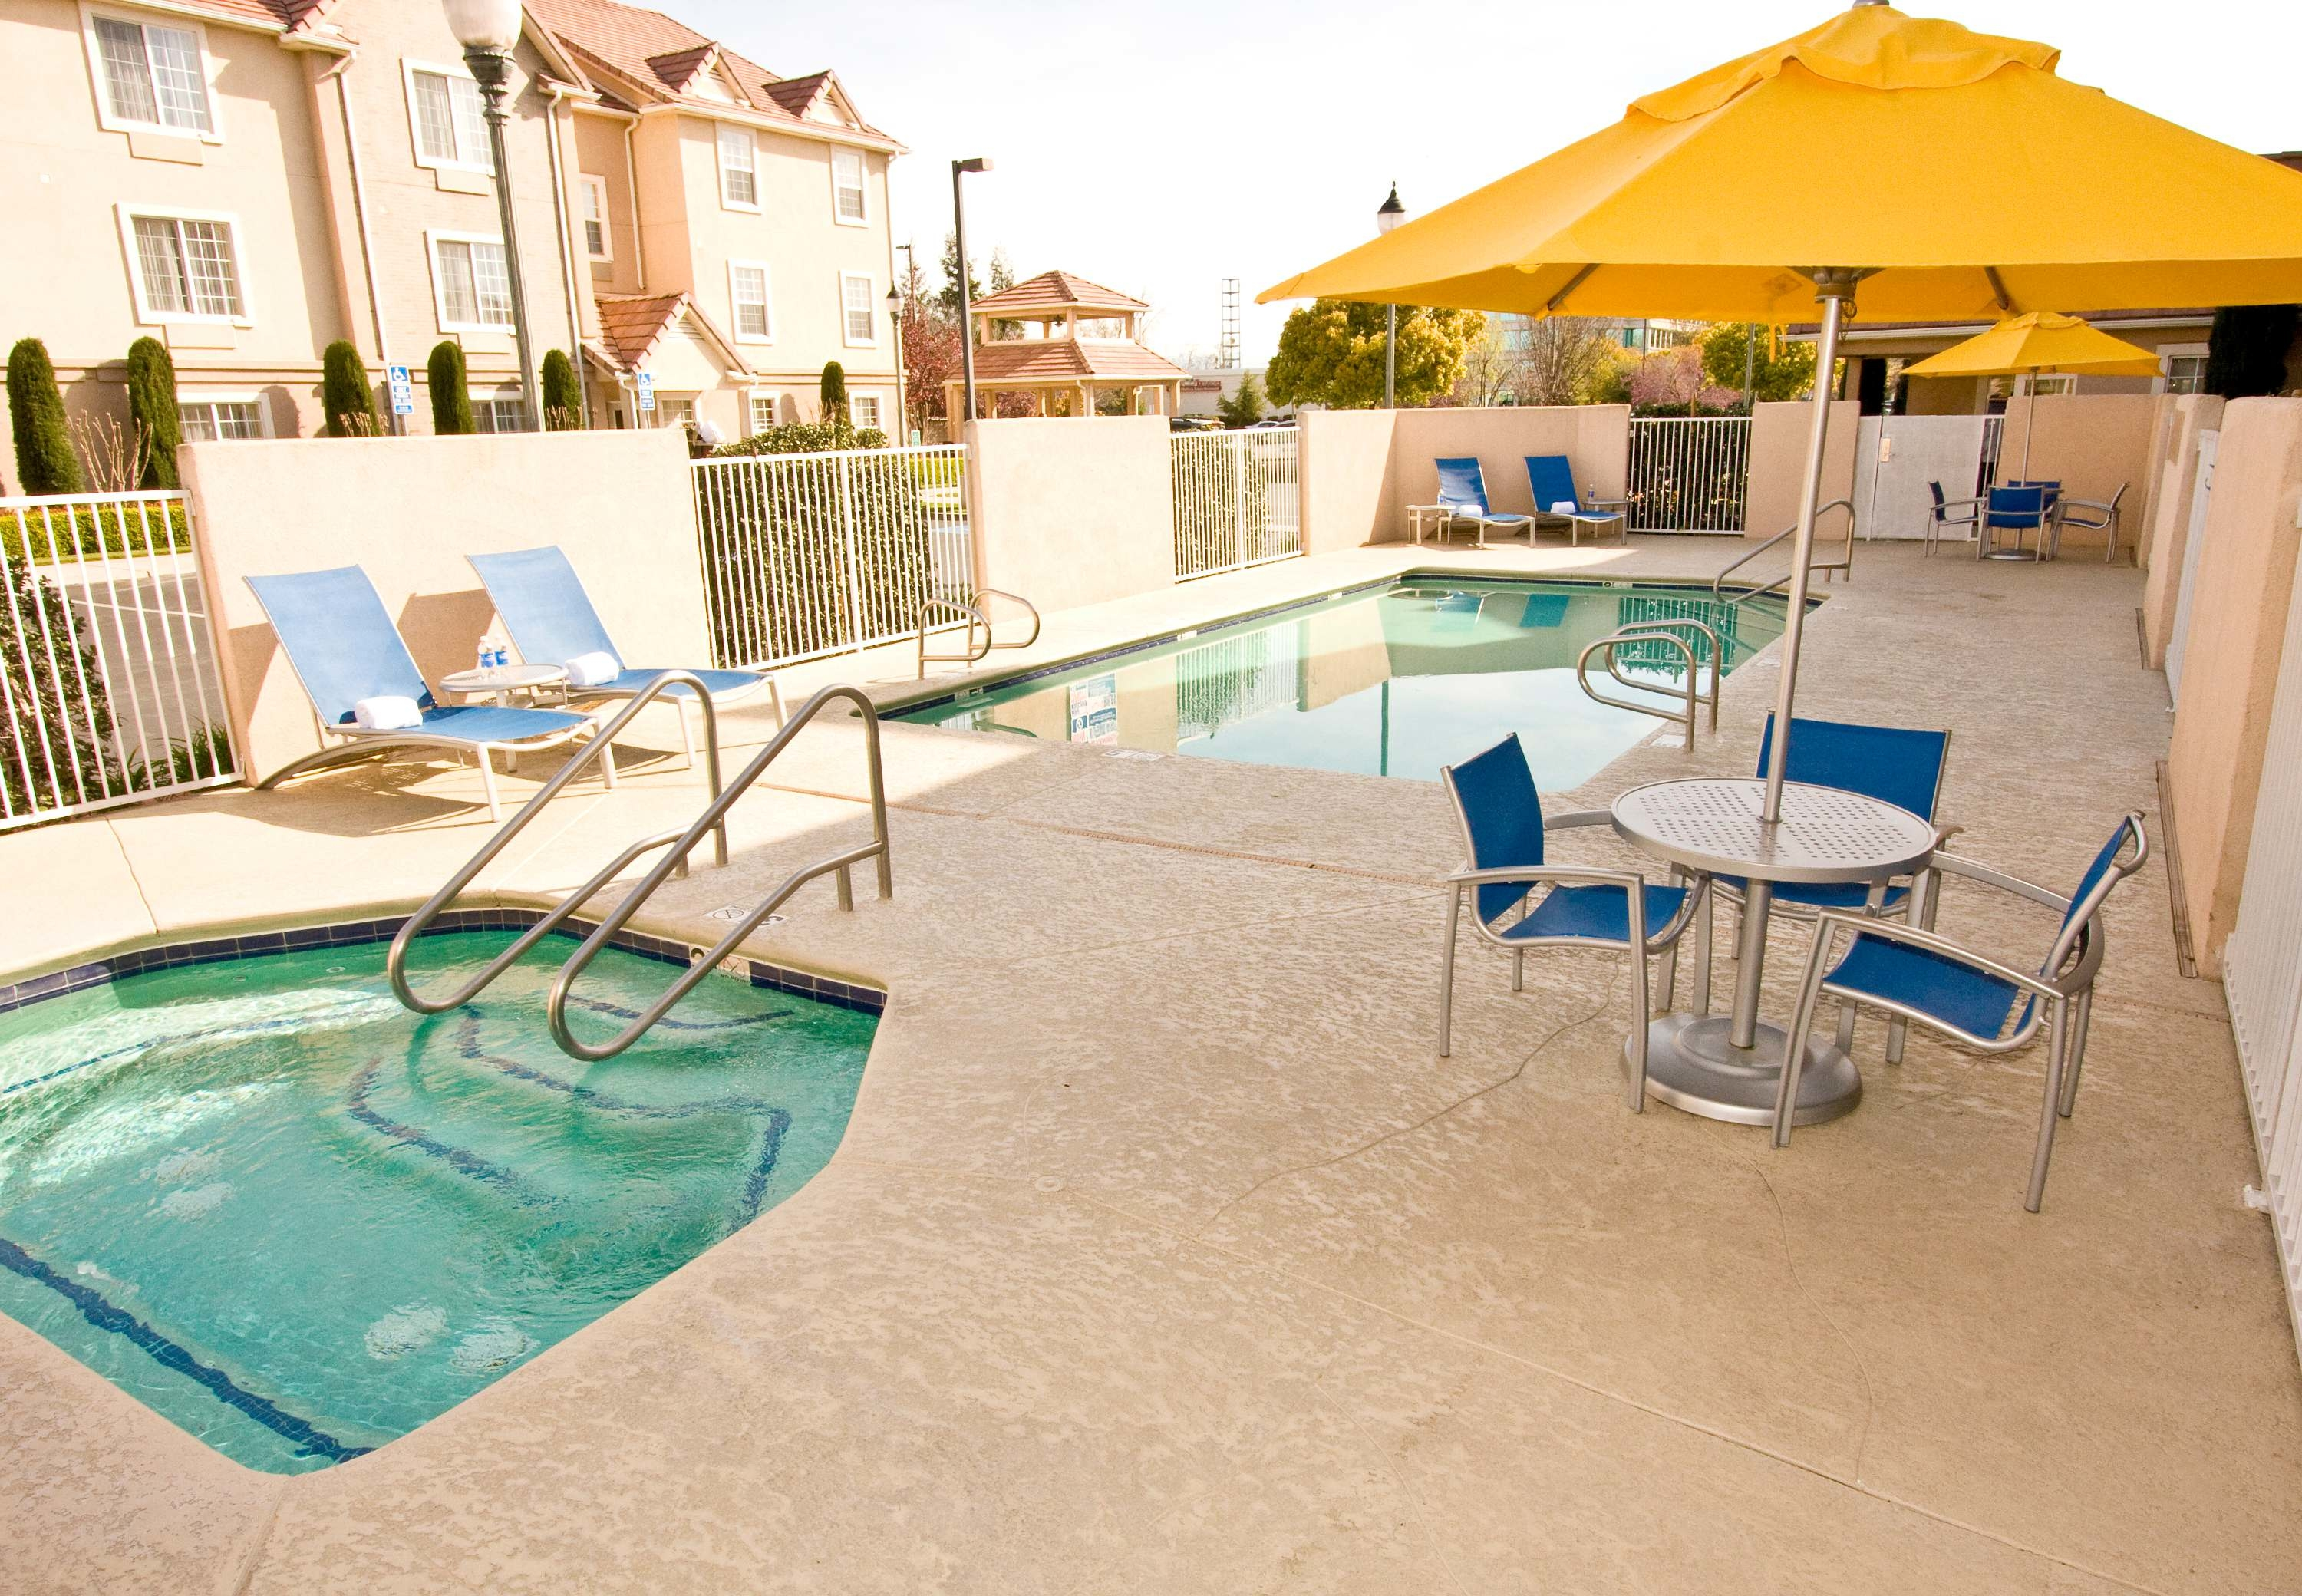 TownePlace Suites by Marriott Fresno image 3